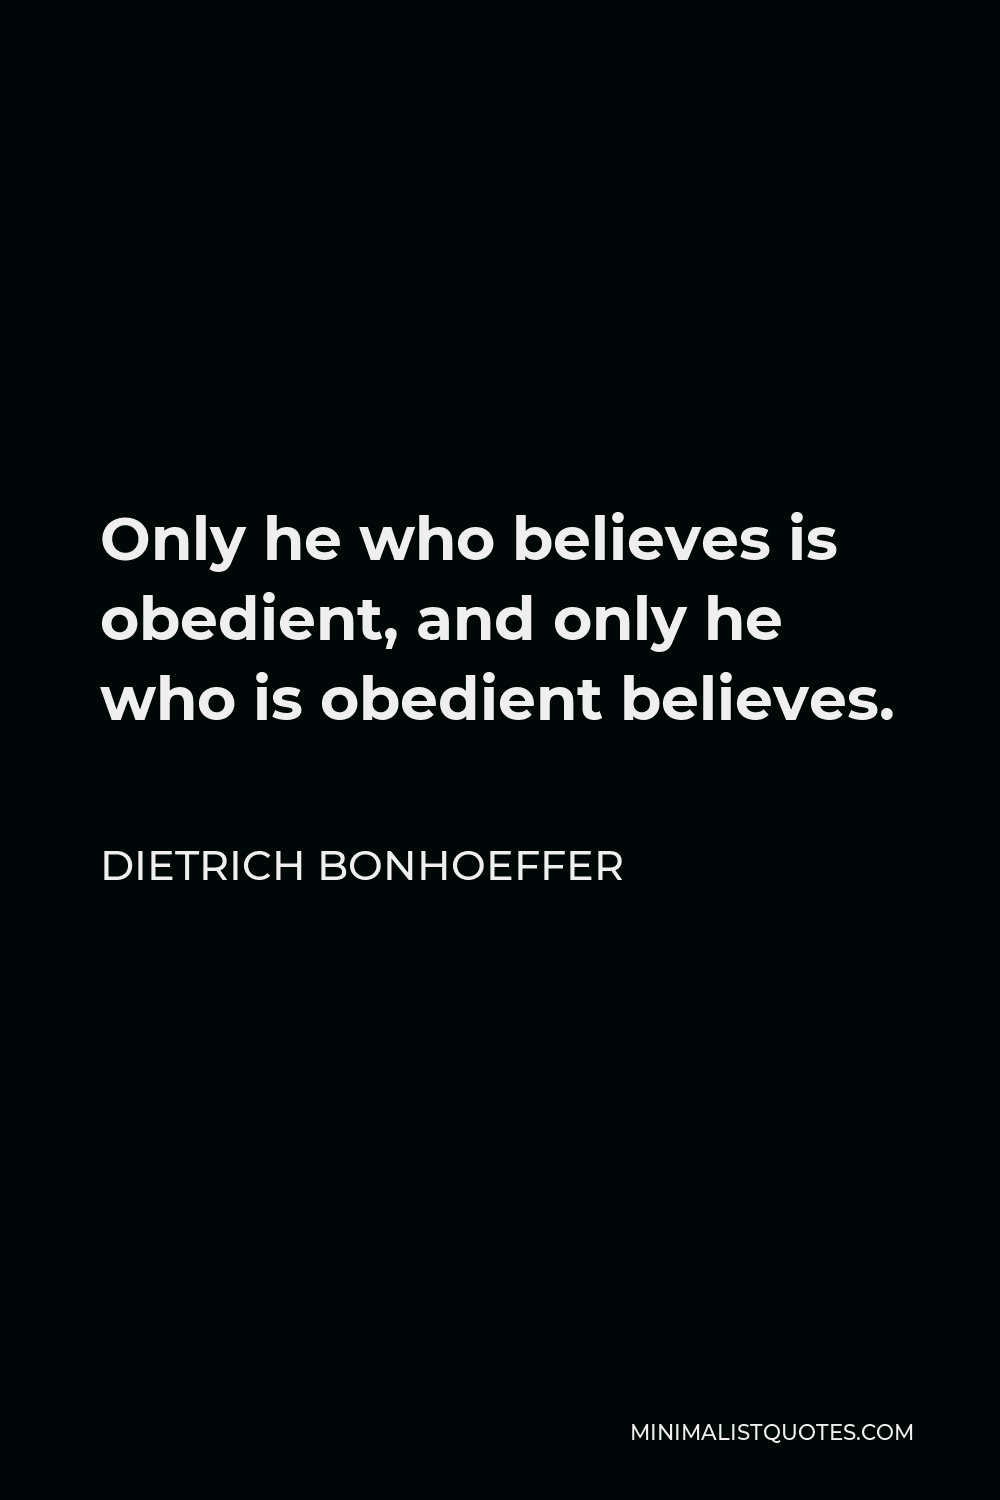 Dietrich Bonhoeffer Quote - Only he who believes is obedient, and only he who is obedient believes.